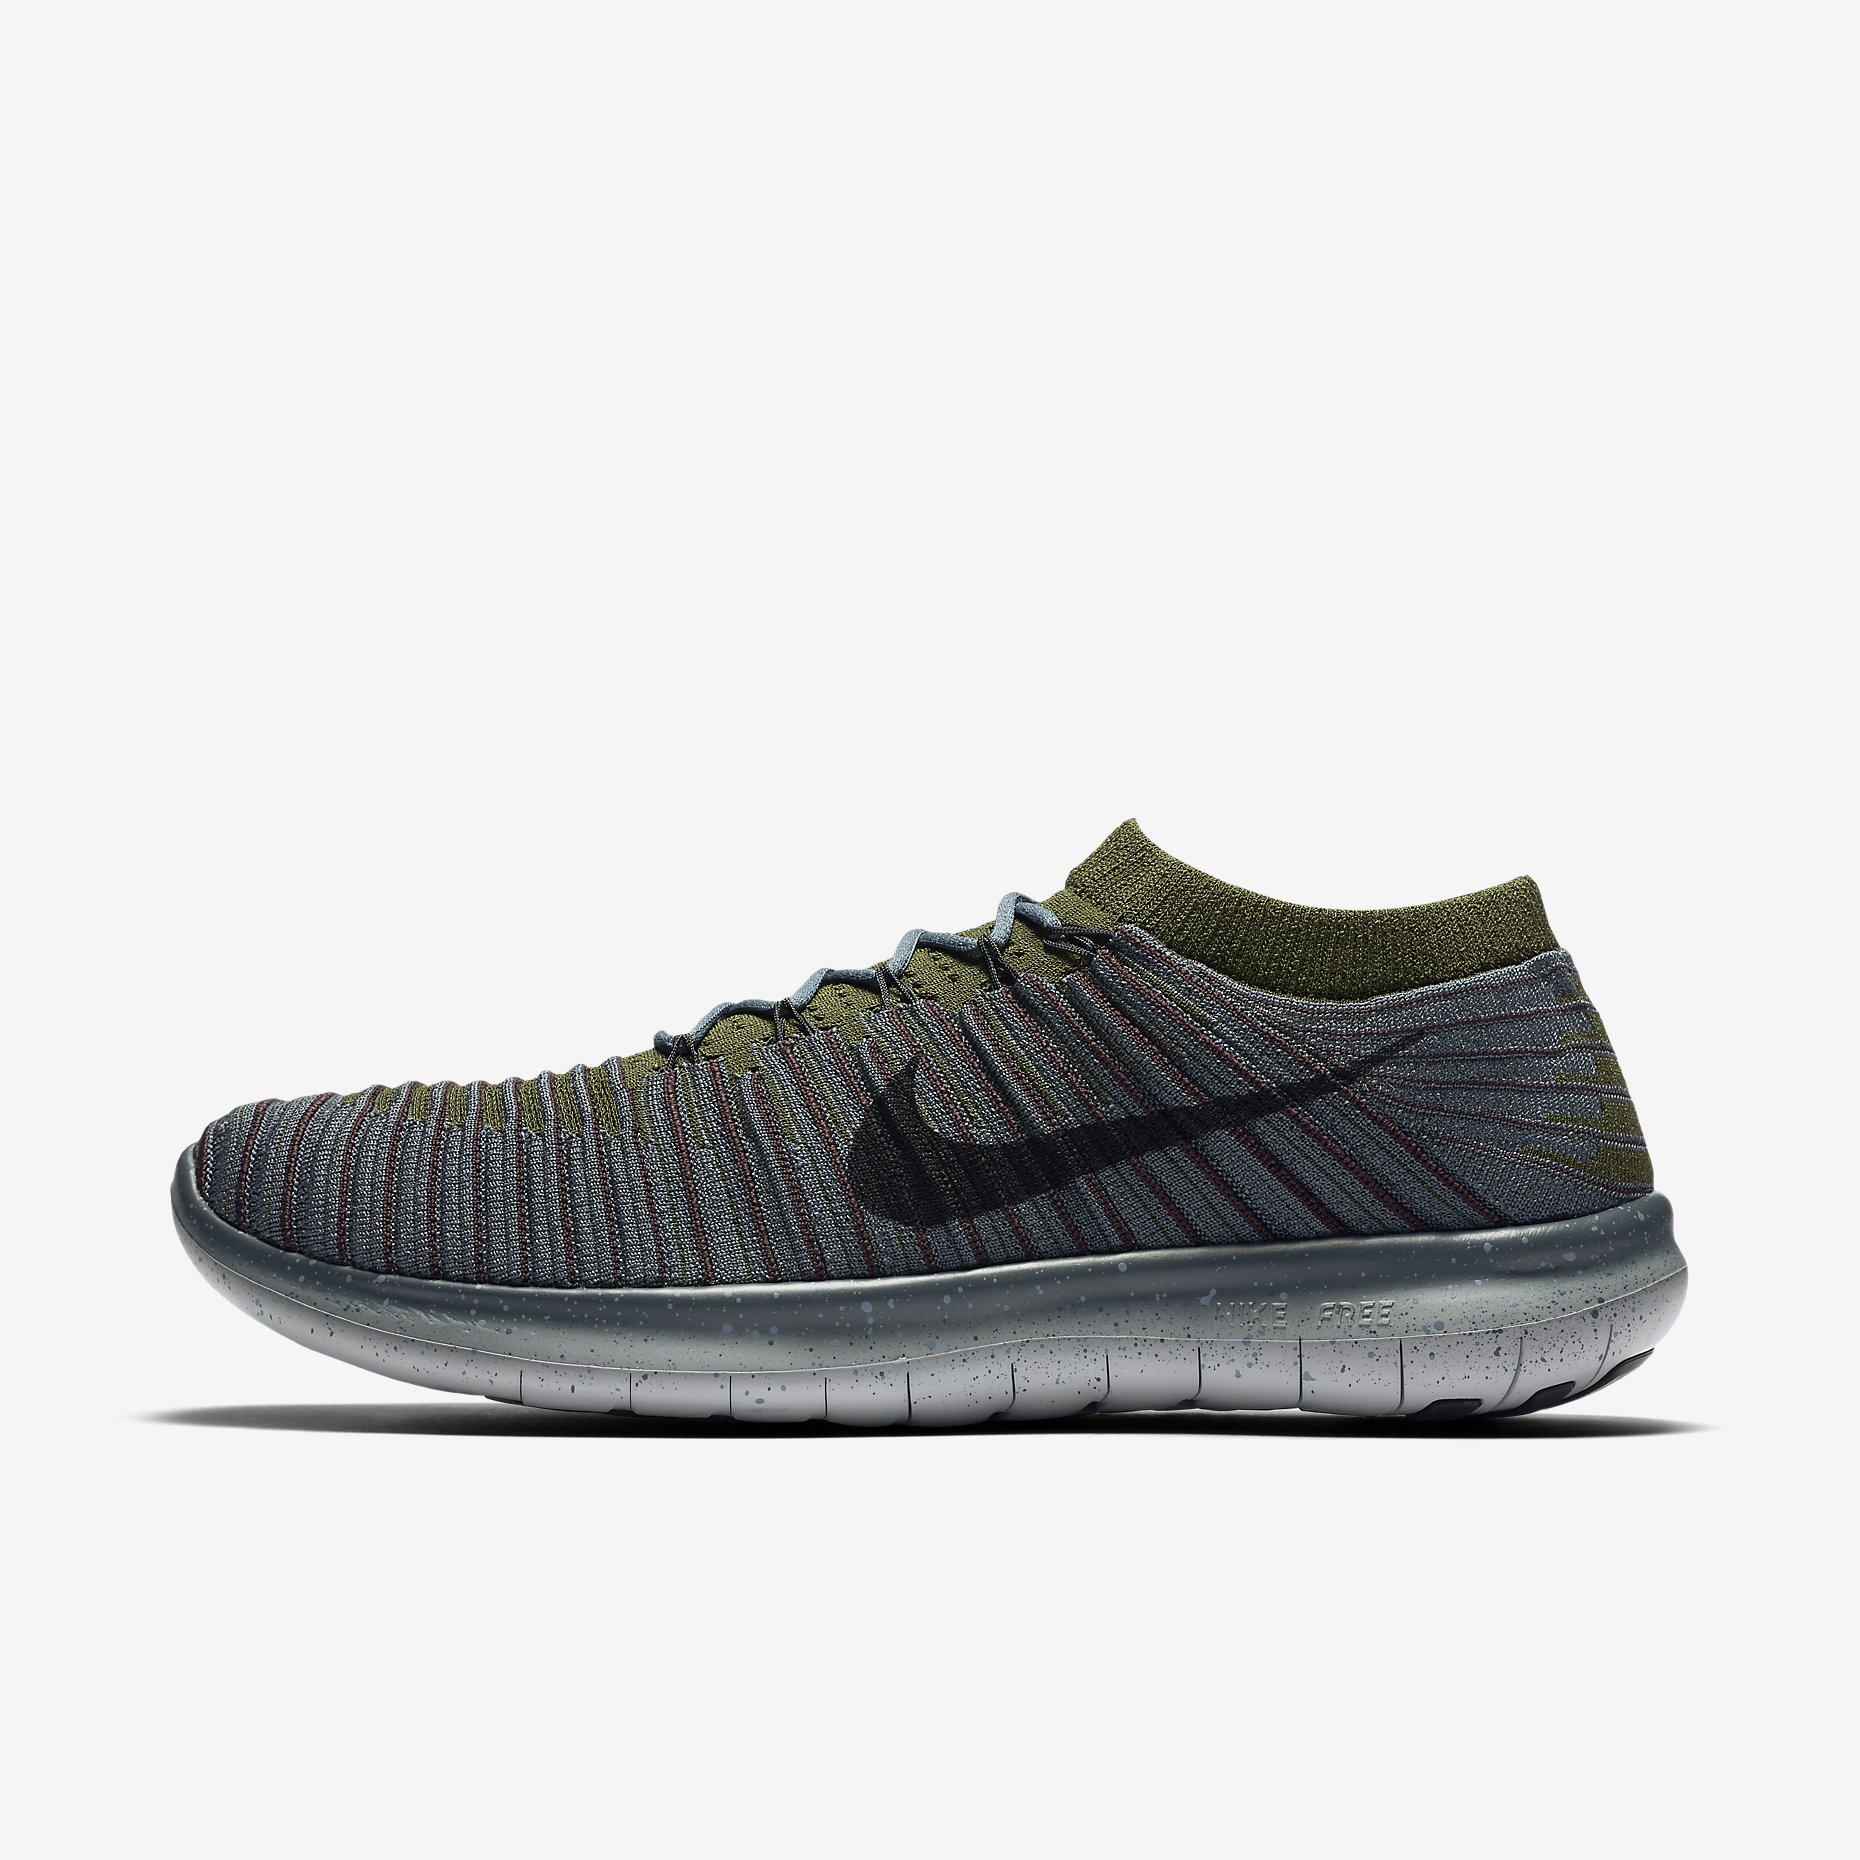 Nike Free RN Motion Flyknit Mens Running Shoes